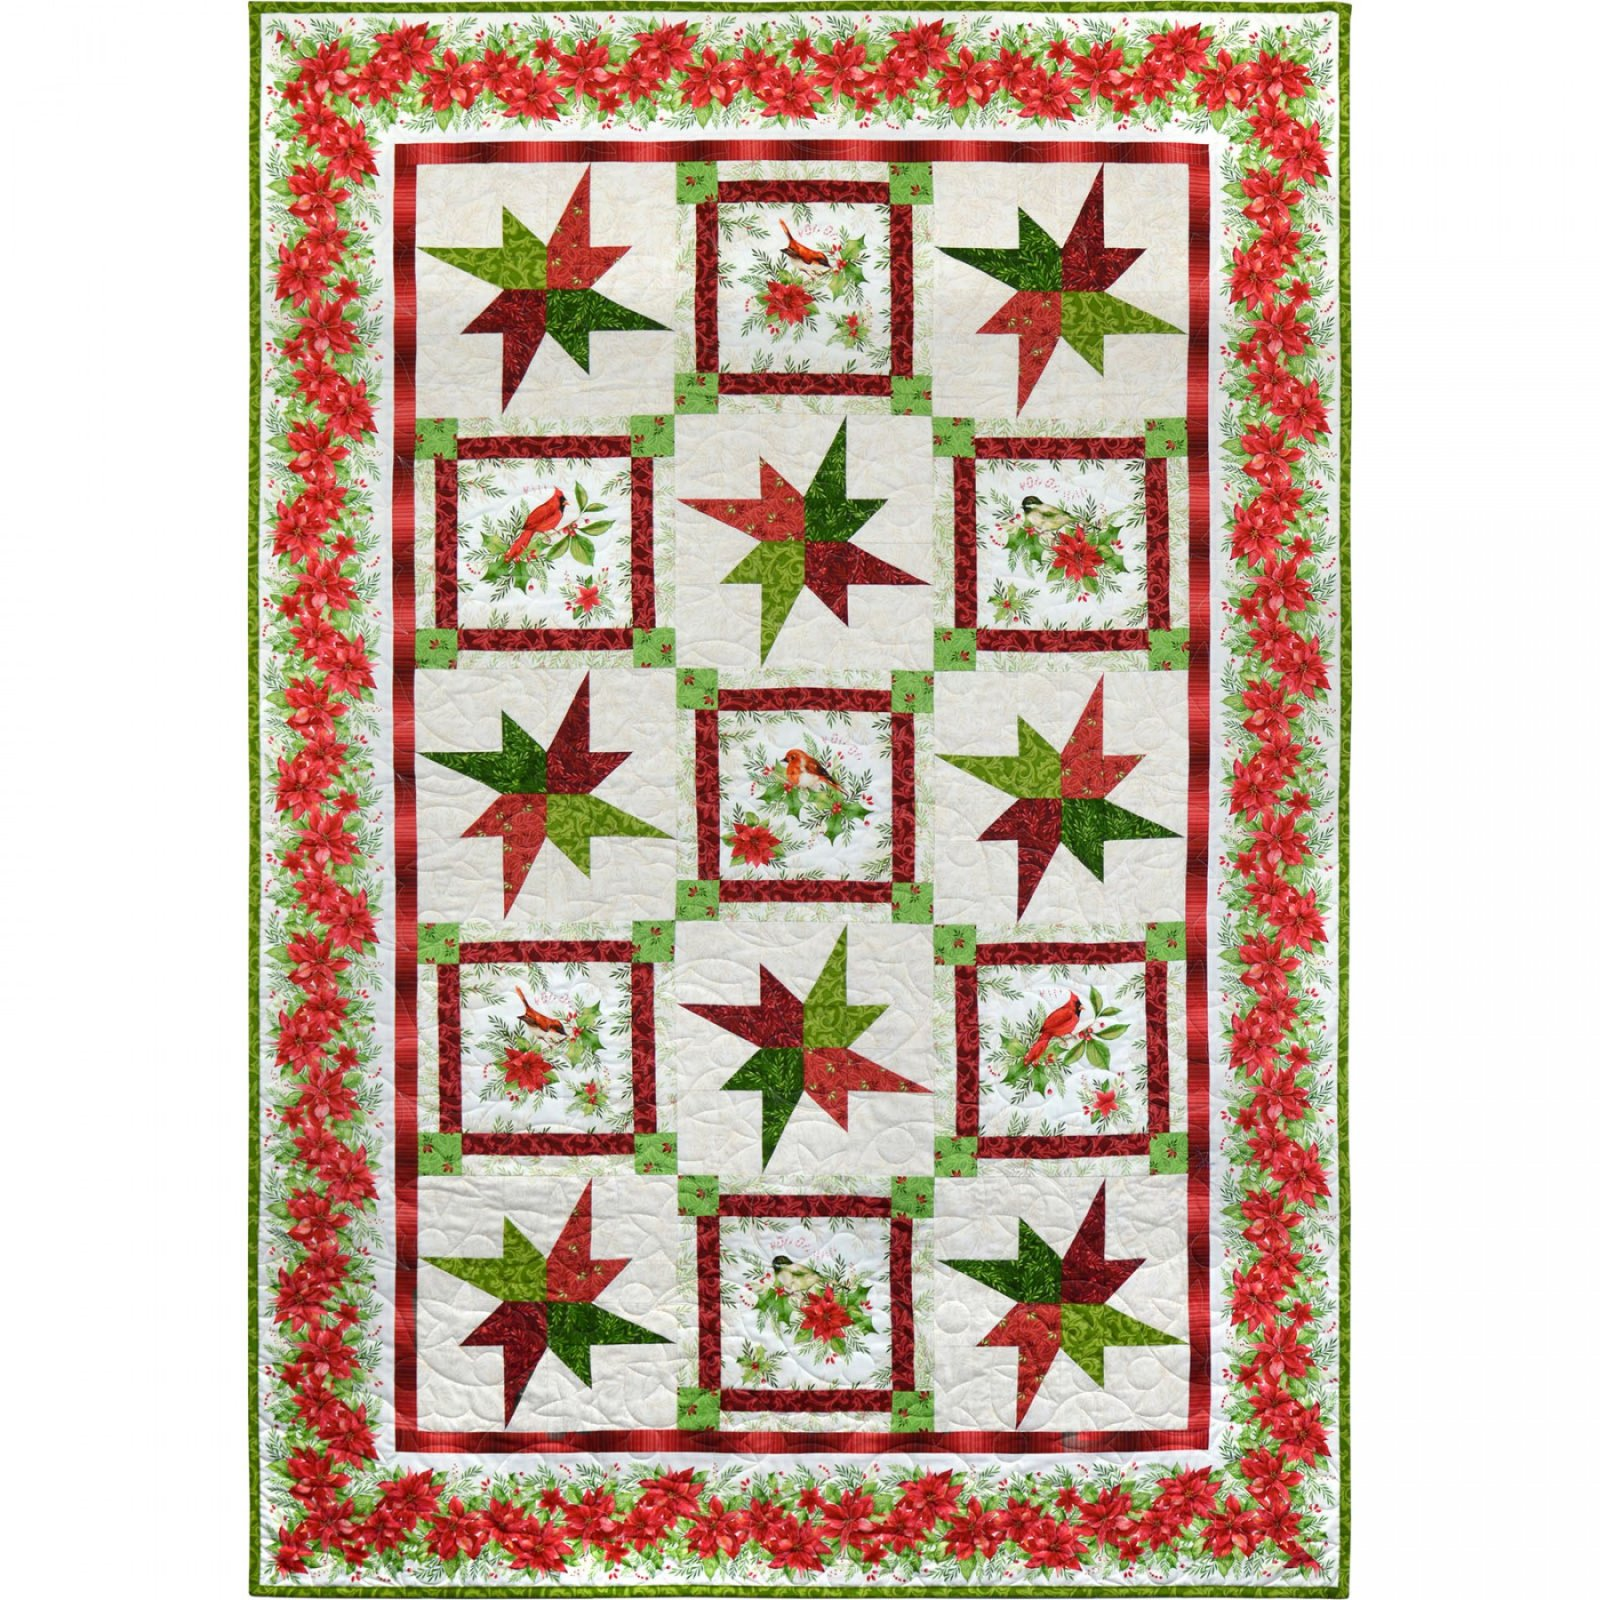 KIT_MASSOC Songbird Christmas Quilt Kit 51 X 73